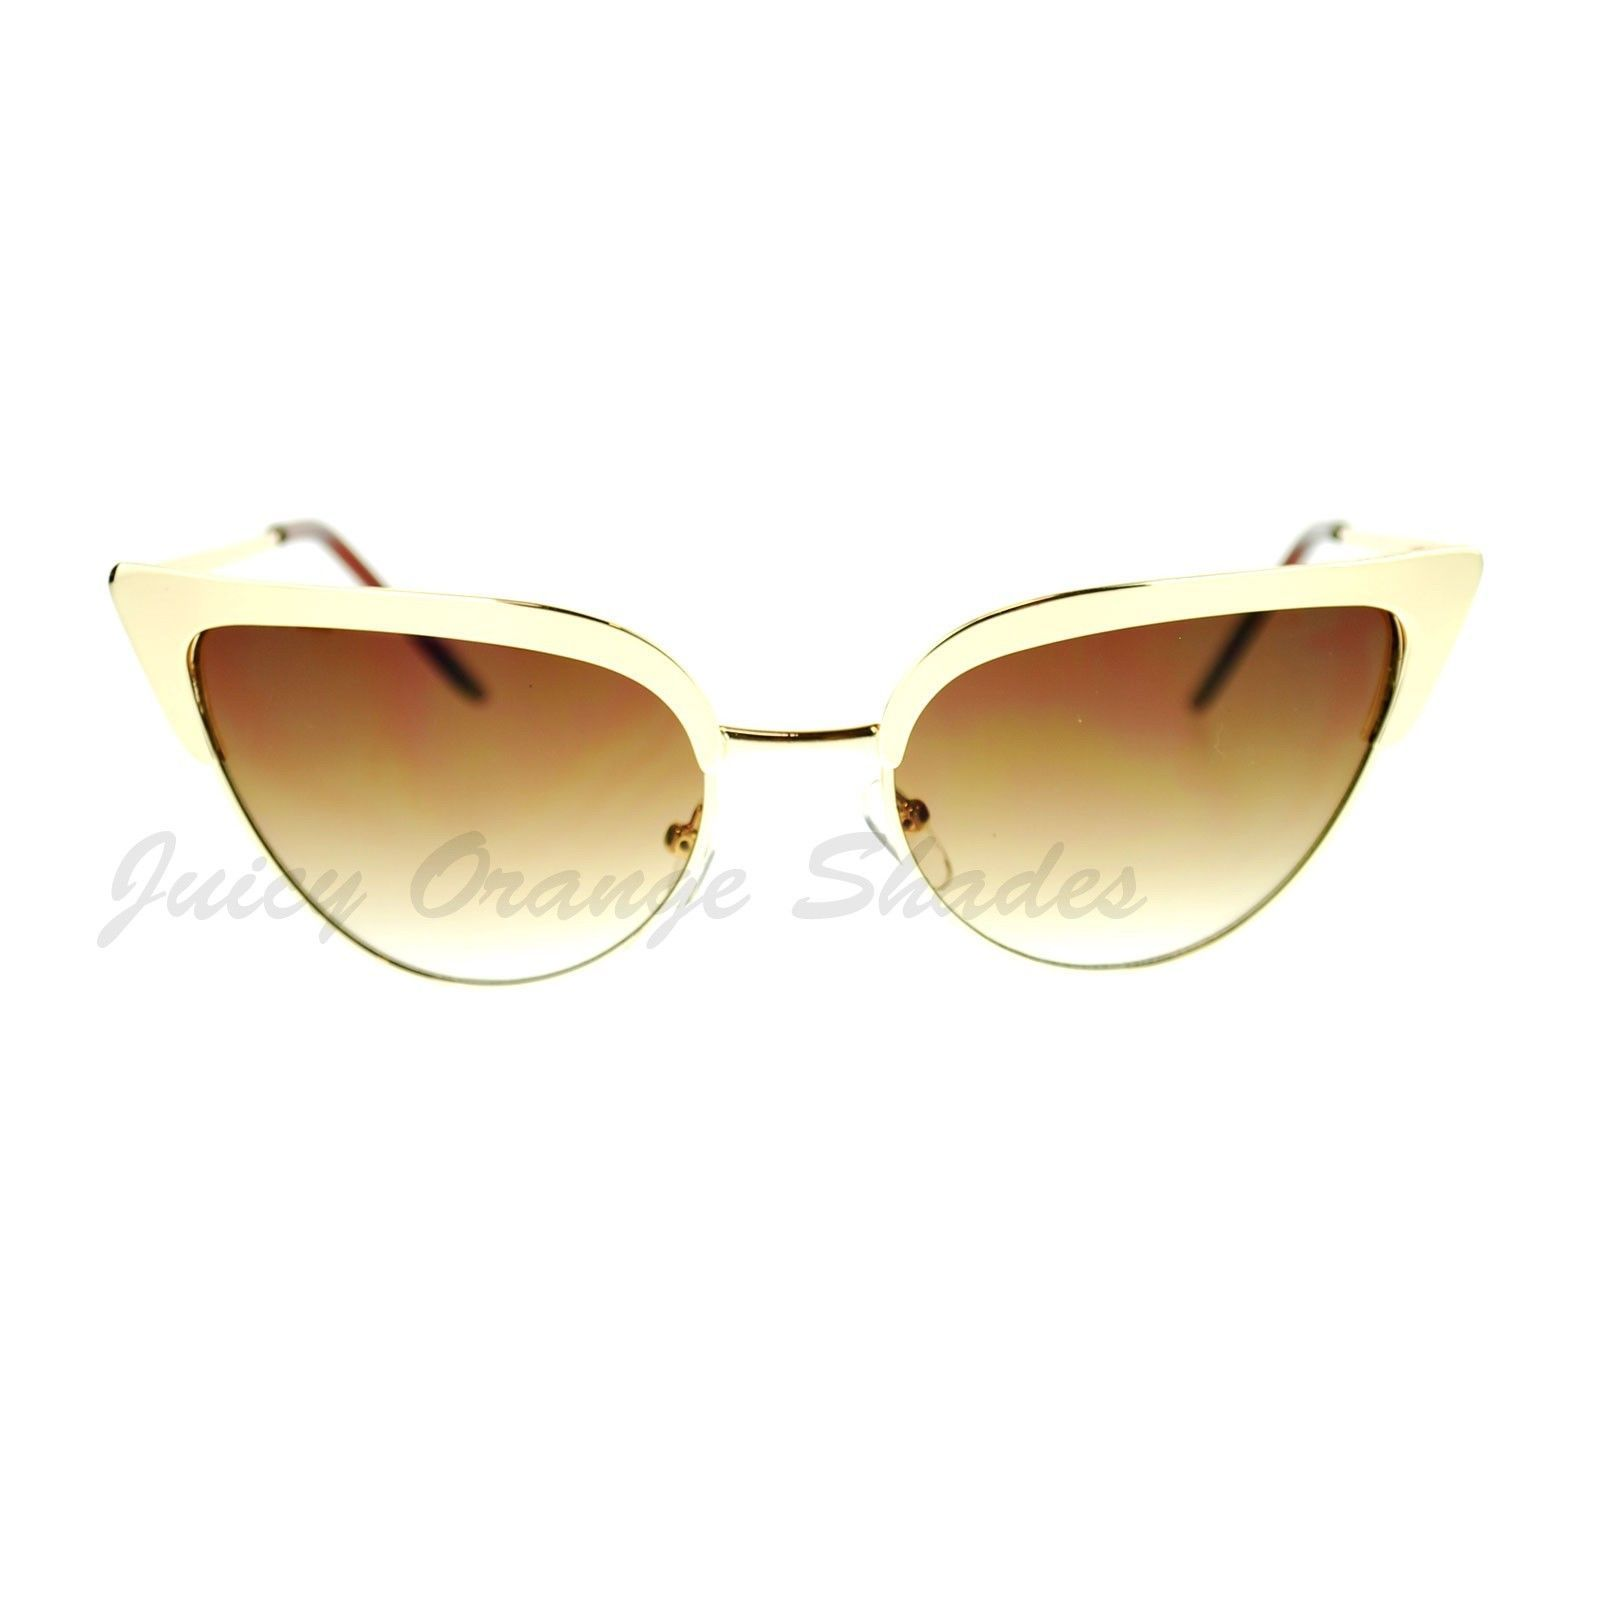 Bolded Top Cateye Metal Frame Sunglasses Women's Fashion